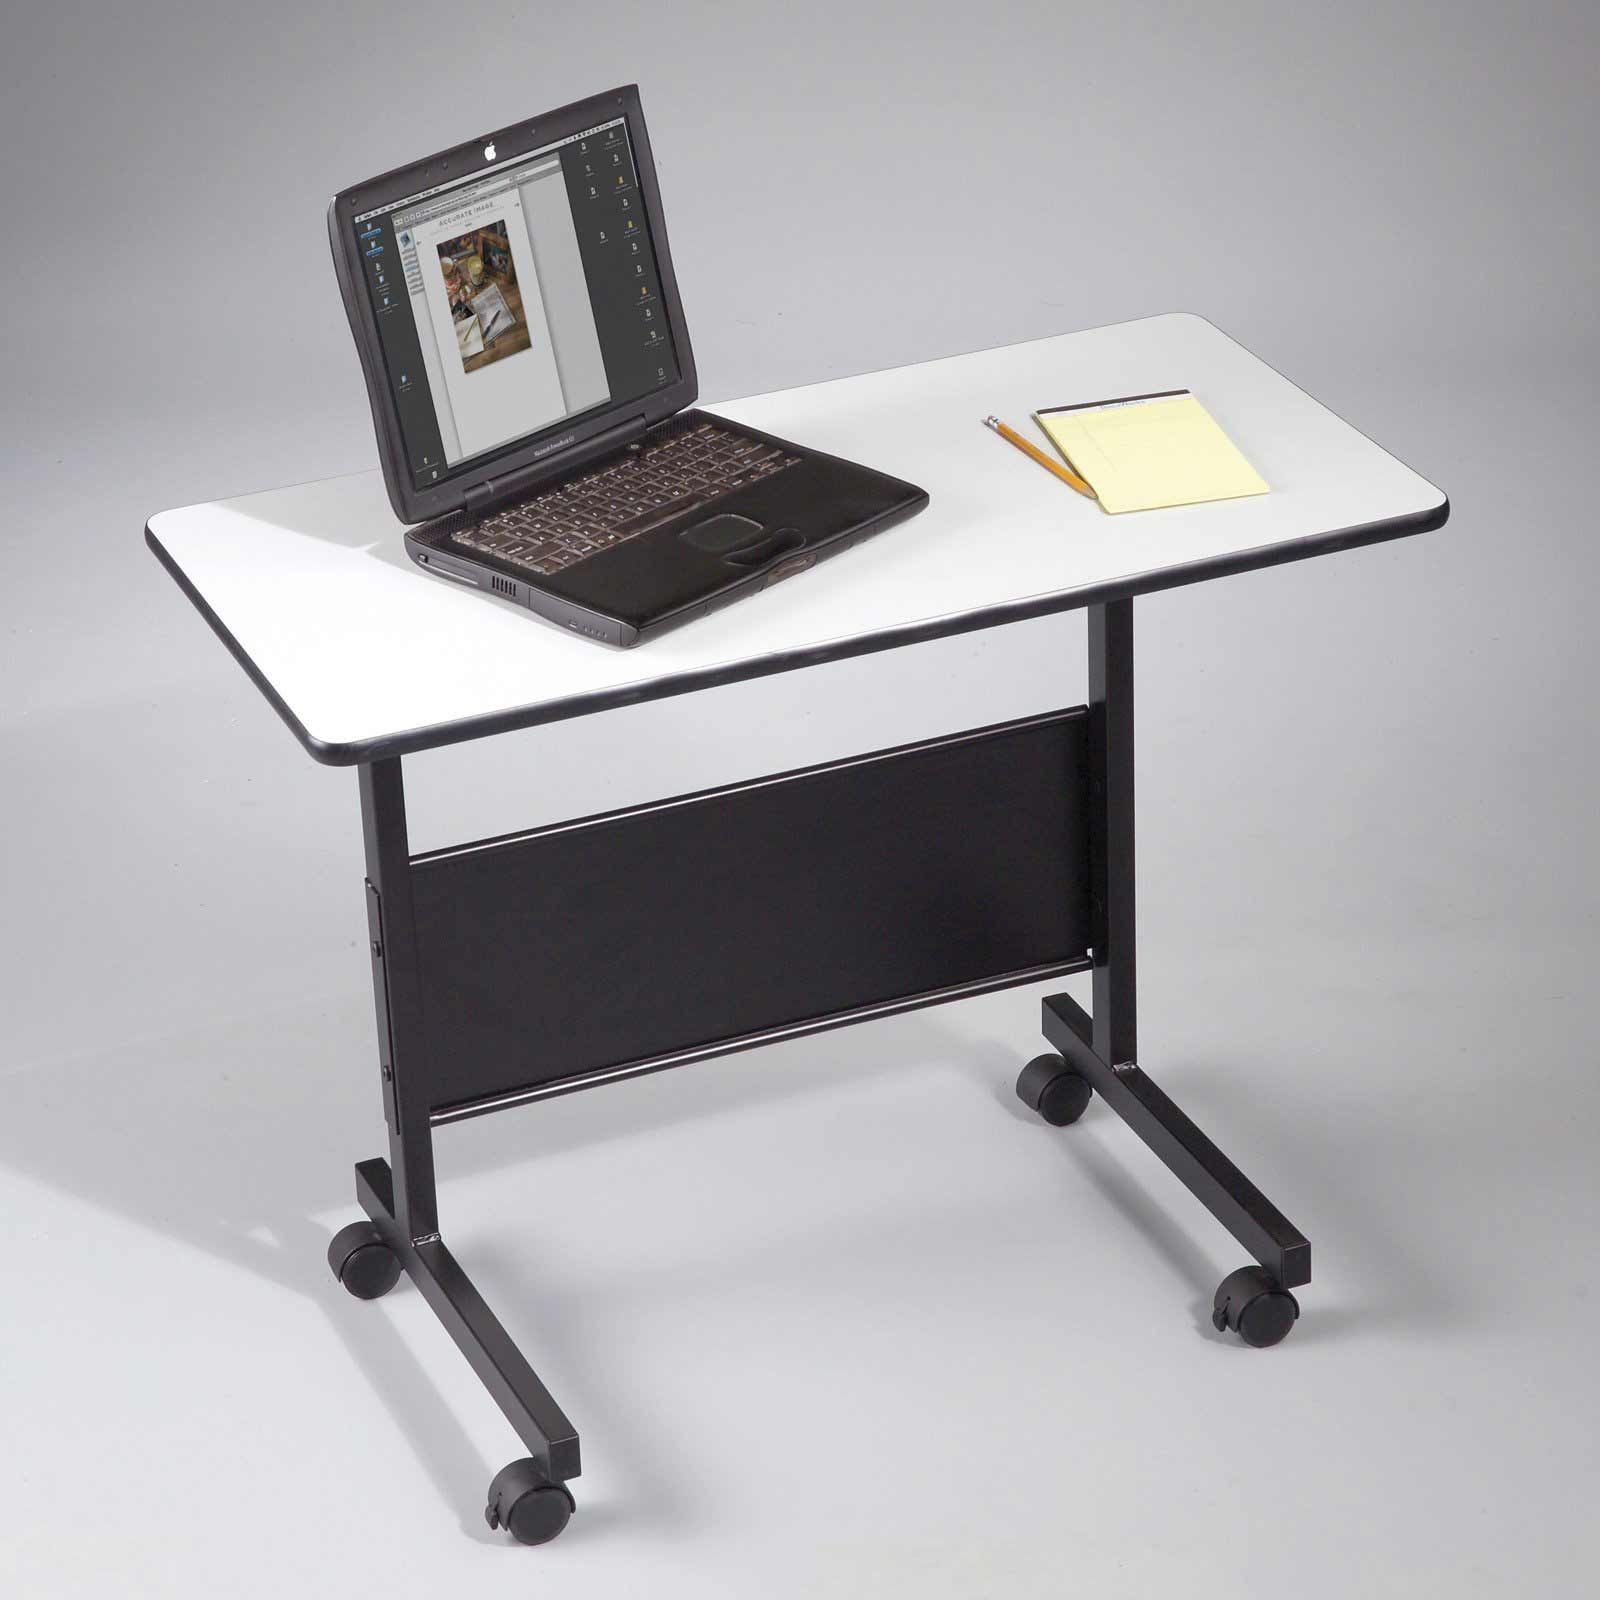 Charmant Computer Table On Wheels